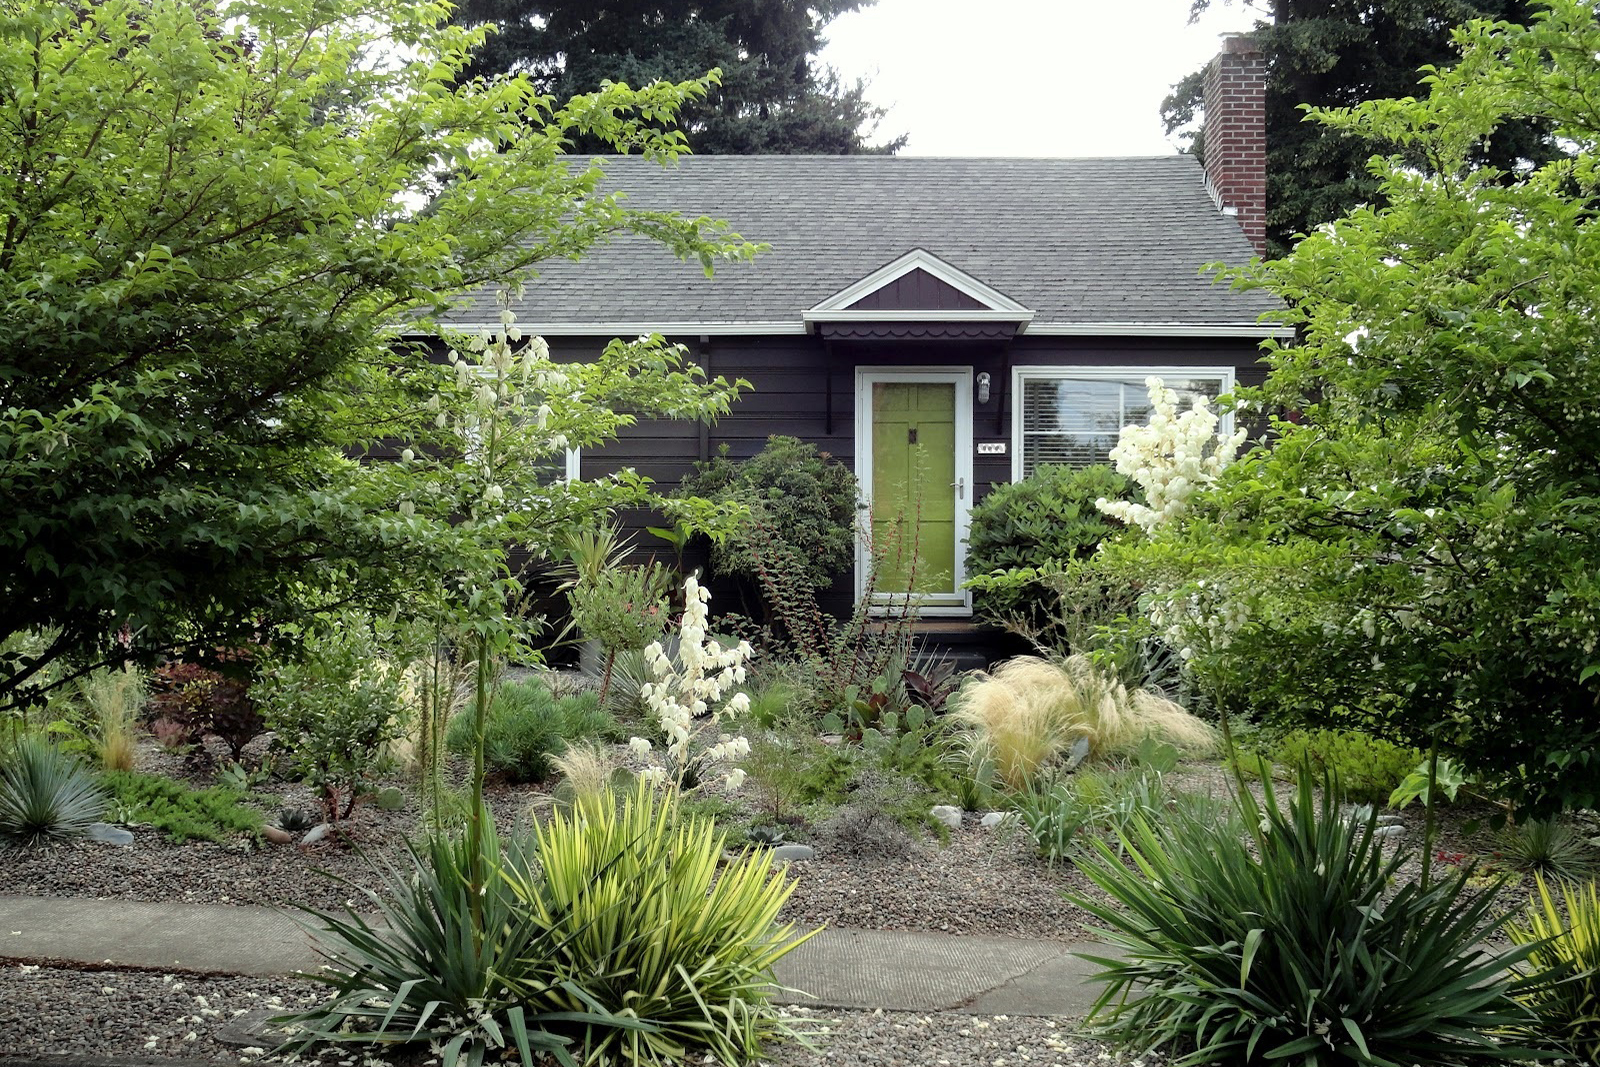 Does House Landscaping Increase Home Value? | Retaining Wall Ideas on economical backyard ideas, simple backyard ideas, eco friendly backyard ideas, easy low maintenance landscaping ideas, safe backyard ideas, affordable backyard ideas, no mow backyard design, low maintenance front yard landscaping ideas, dog-friendly backyard landscaping ideas,